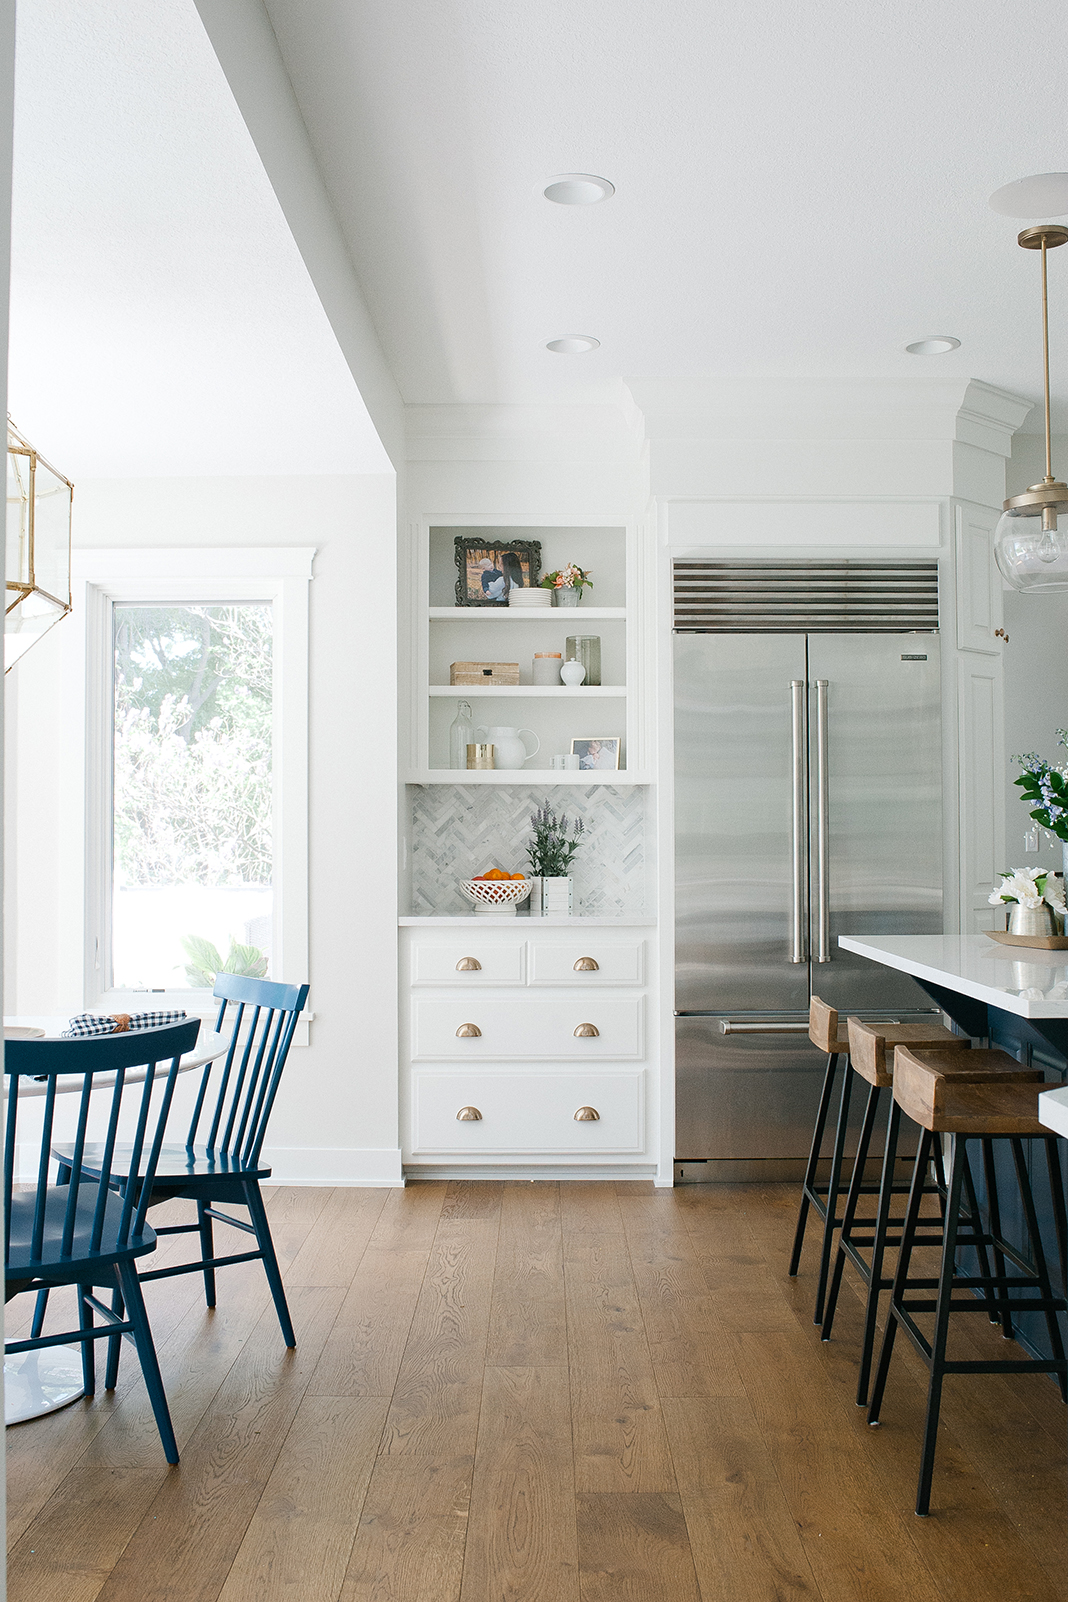 A white kitchen with a navy island, navy dining chairs, and a stainless steel refrigerator.